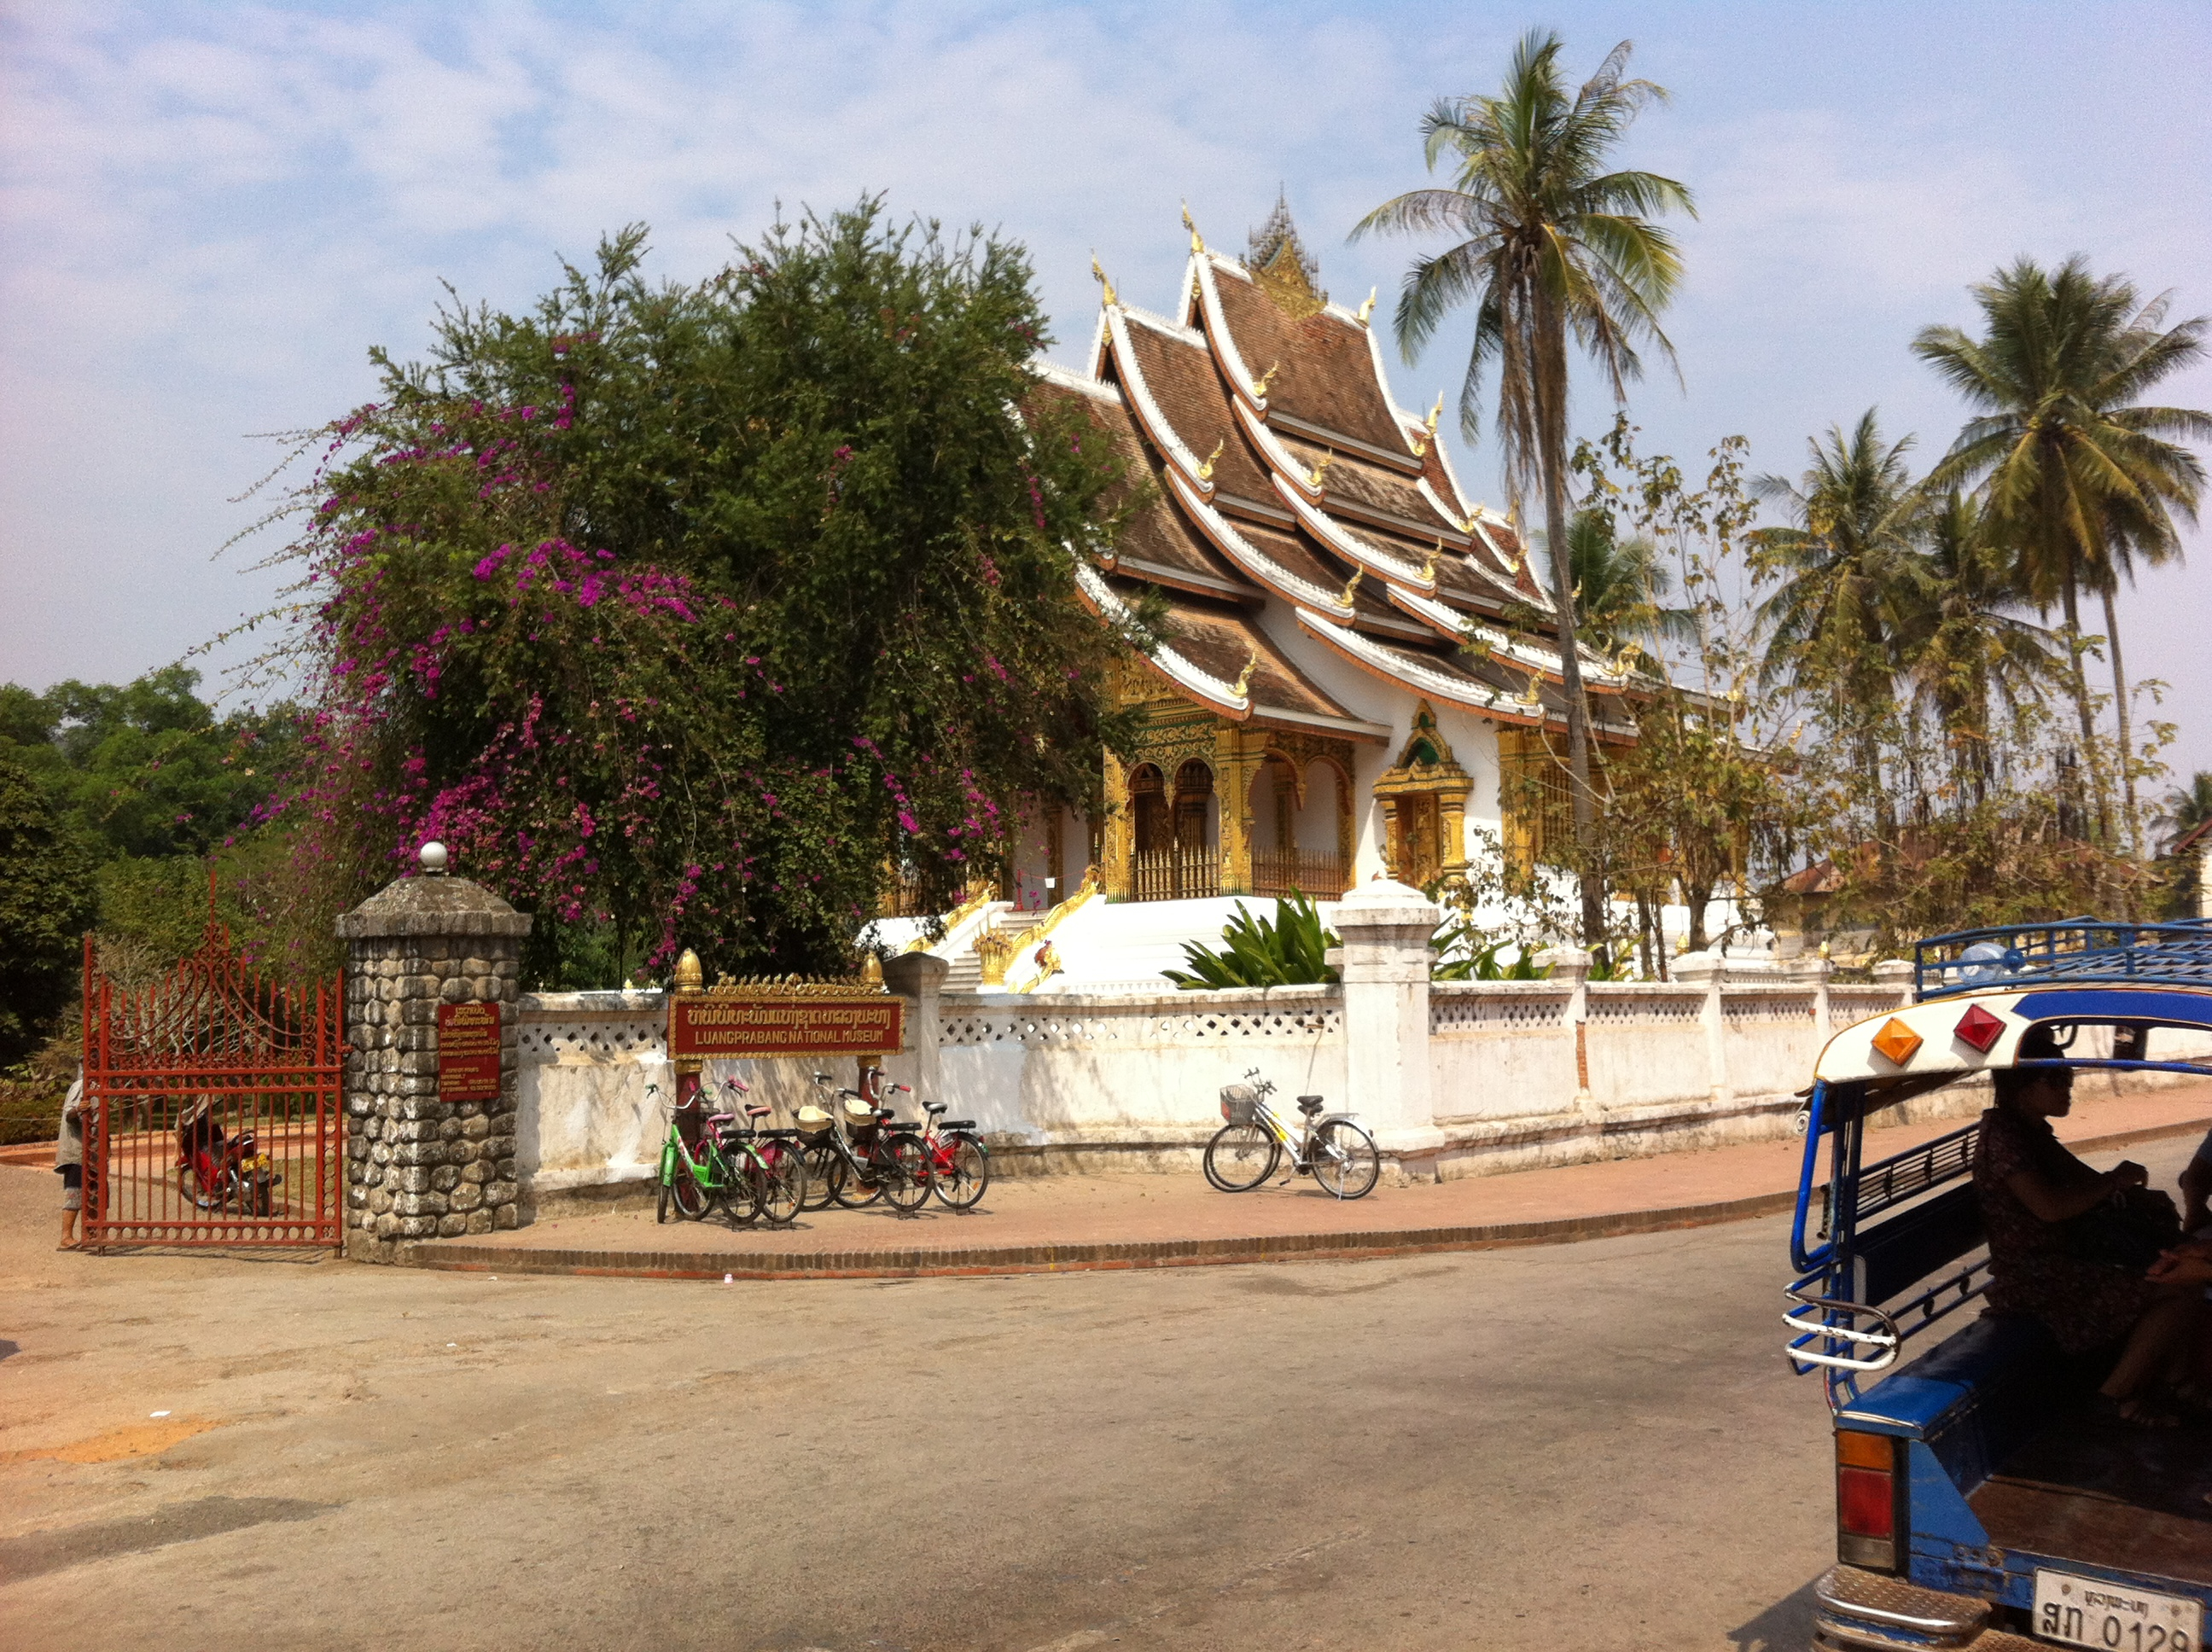 Haw Kham Temple at the entrance to the royal palace in Luang Prabang (photo Catherine Clover 2013)